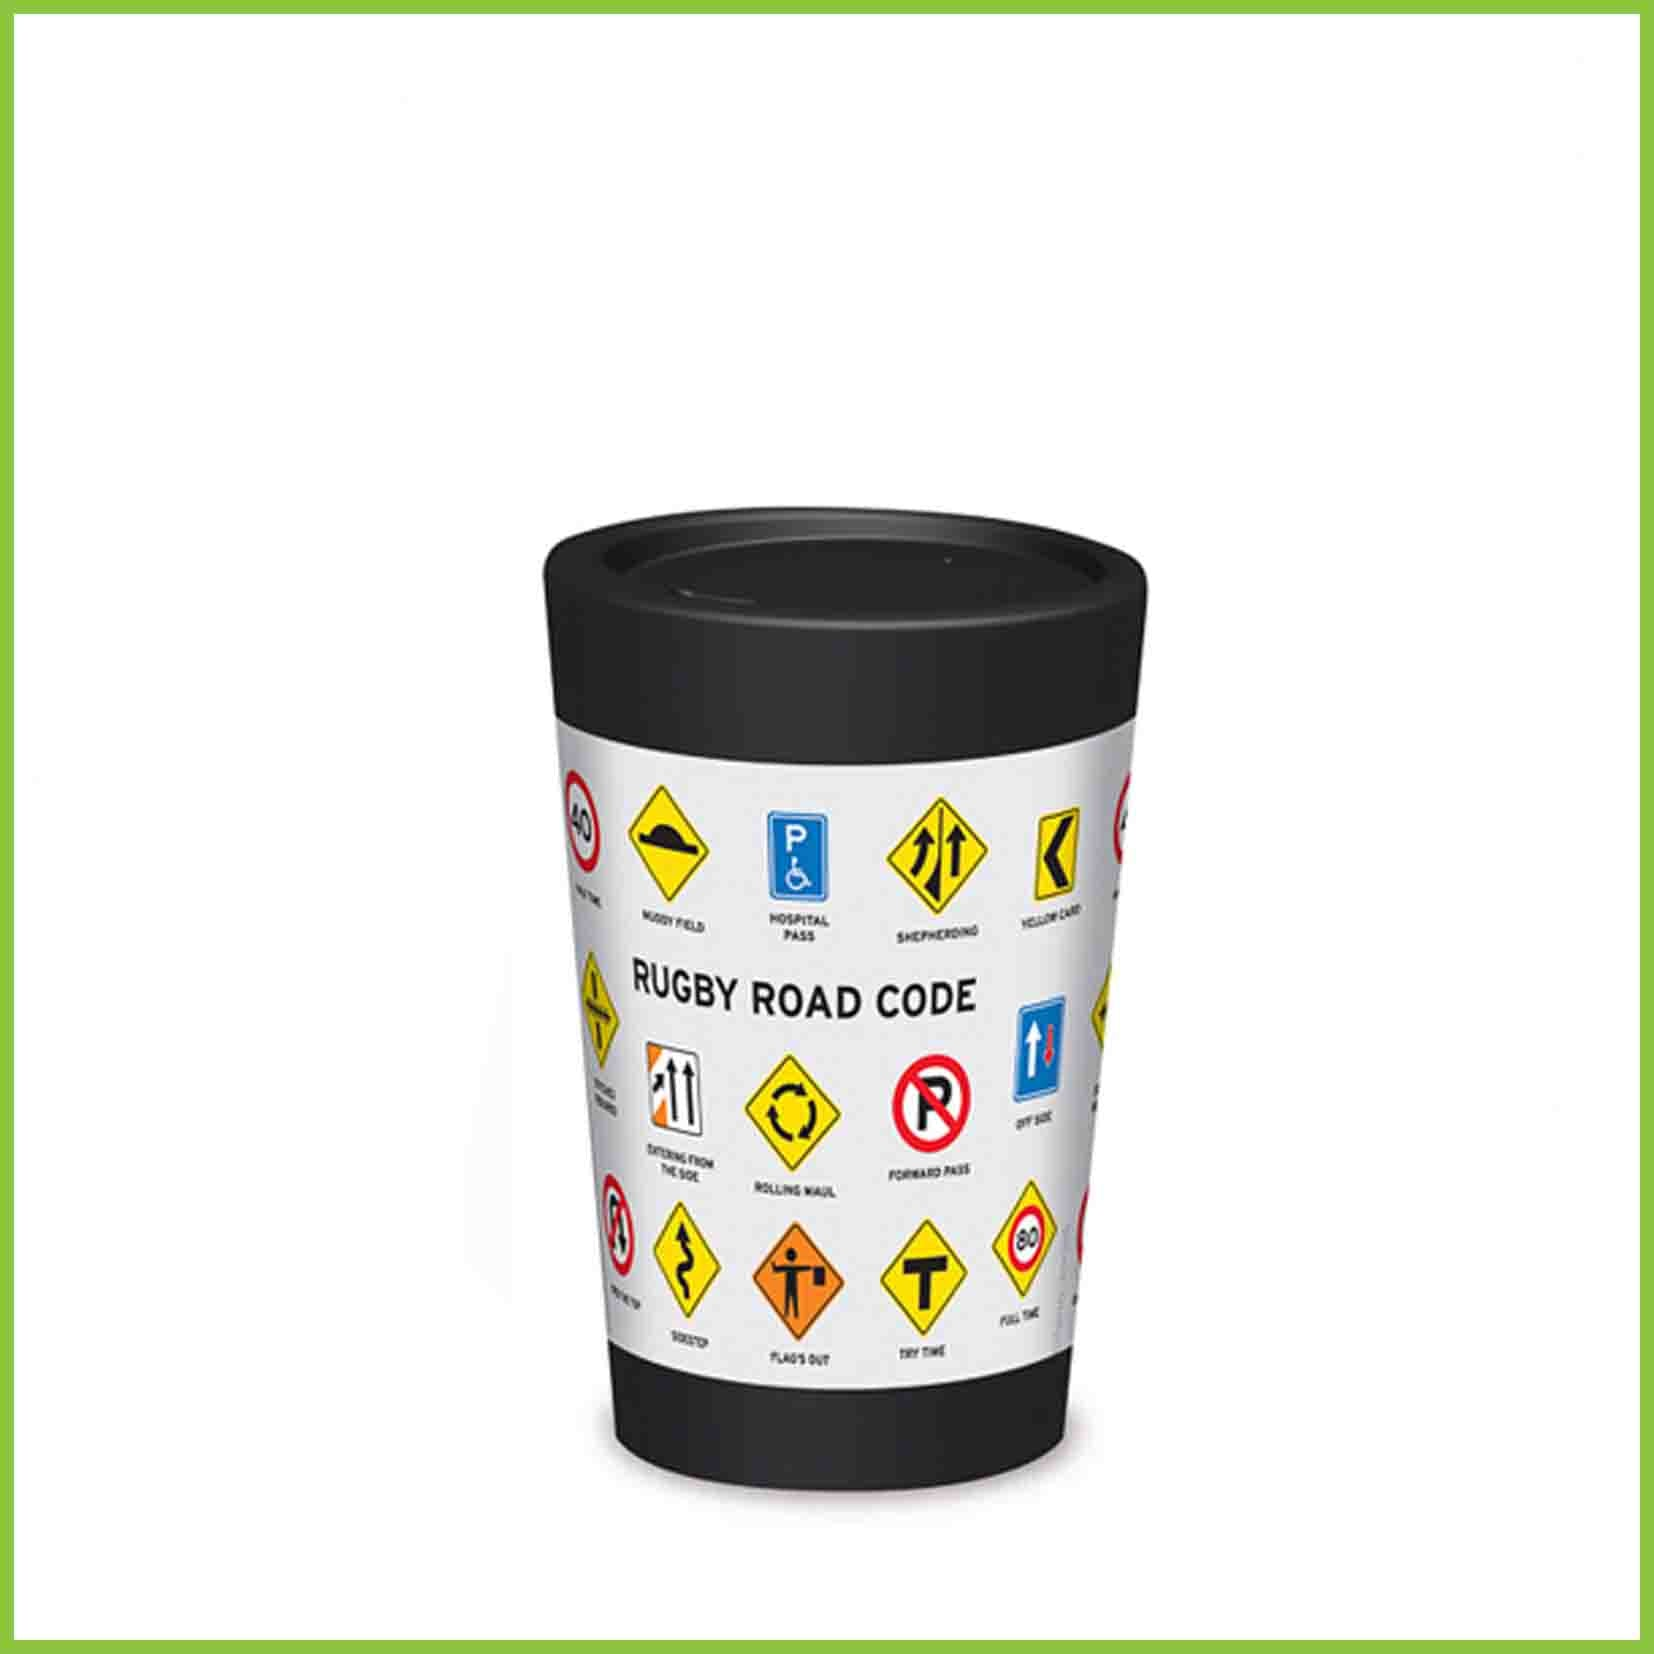 A lightweight reusable cup from CuppaCoffeeCup with a Rugby themed road signs design.